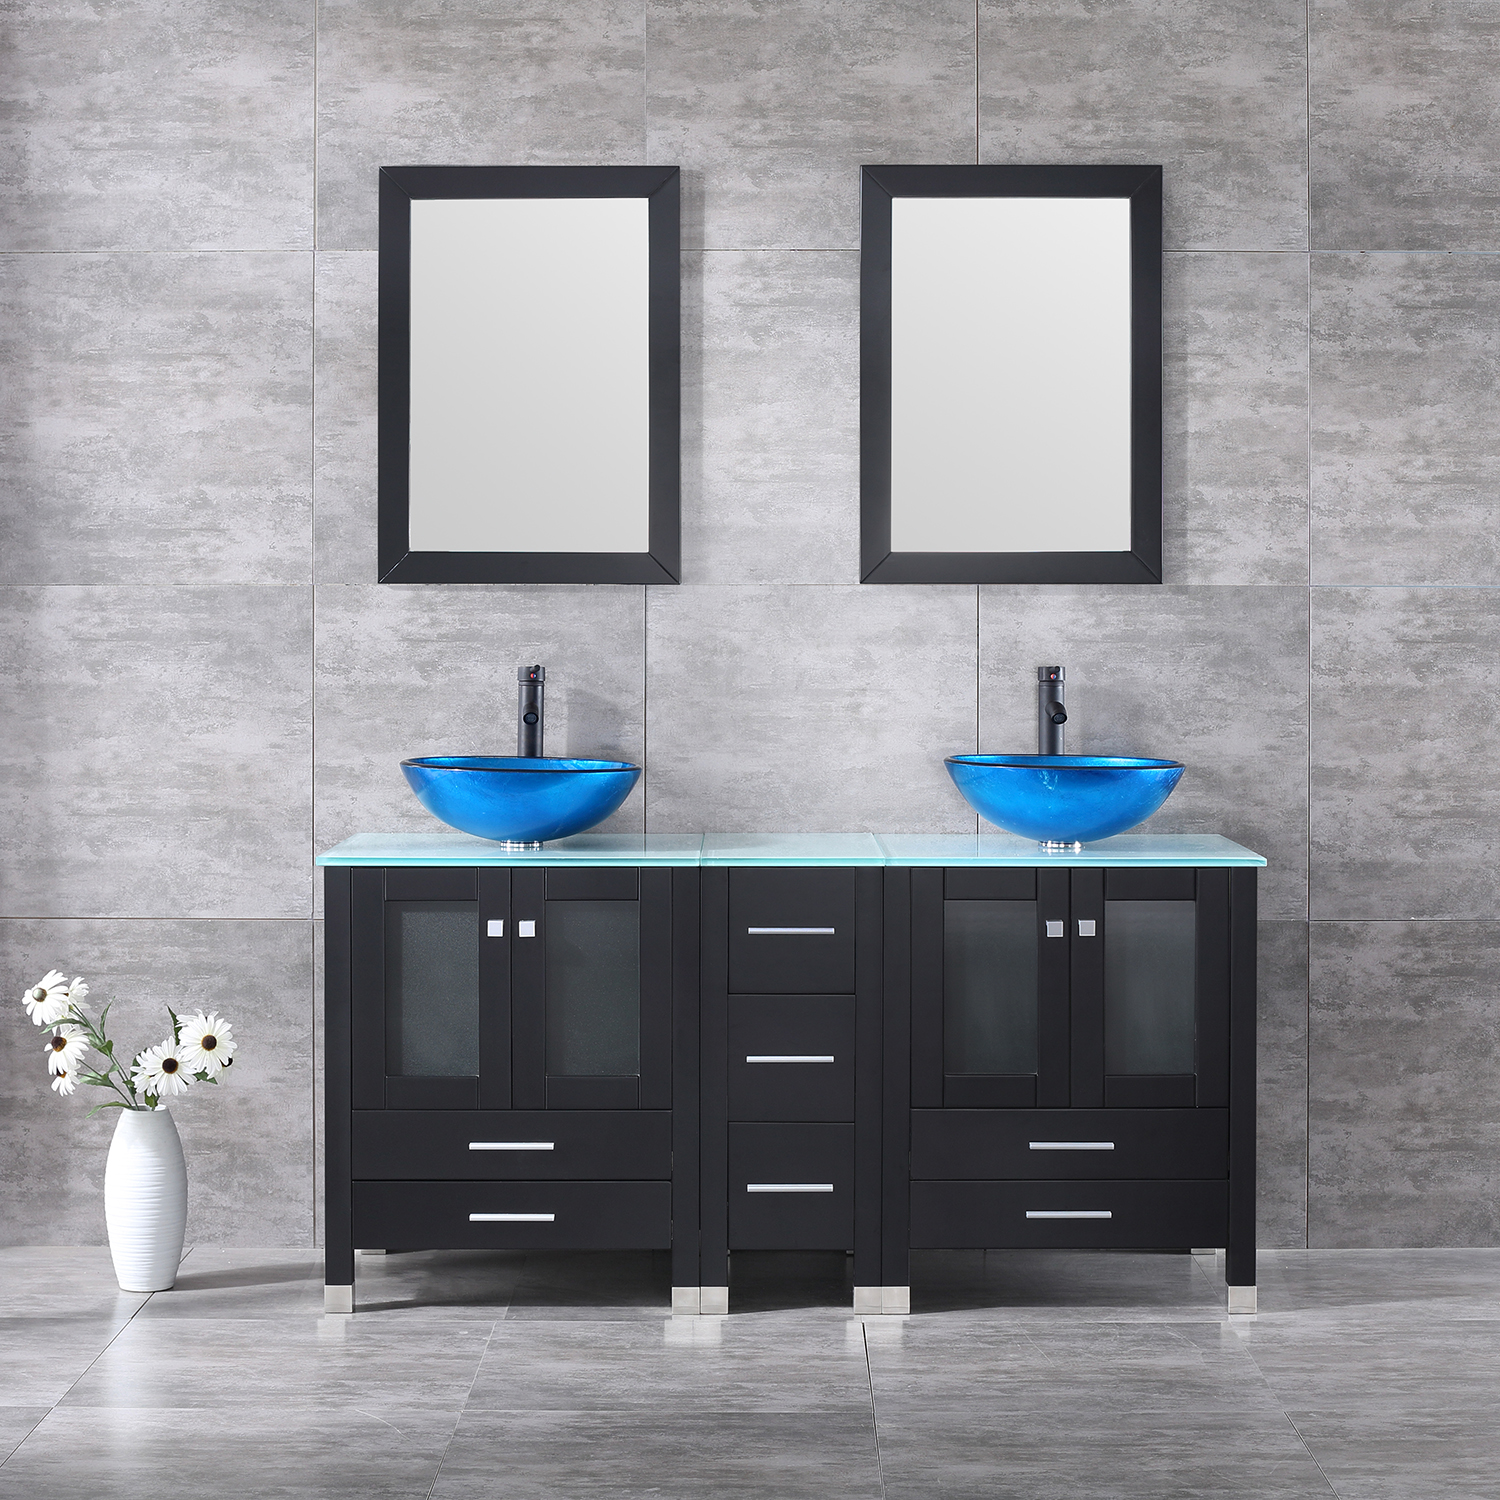 60inch Bathroom Vanity Cabinet Tempered Glass Vessel Sink Faucet